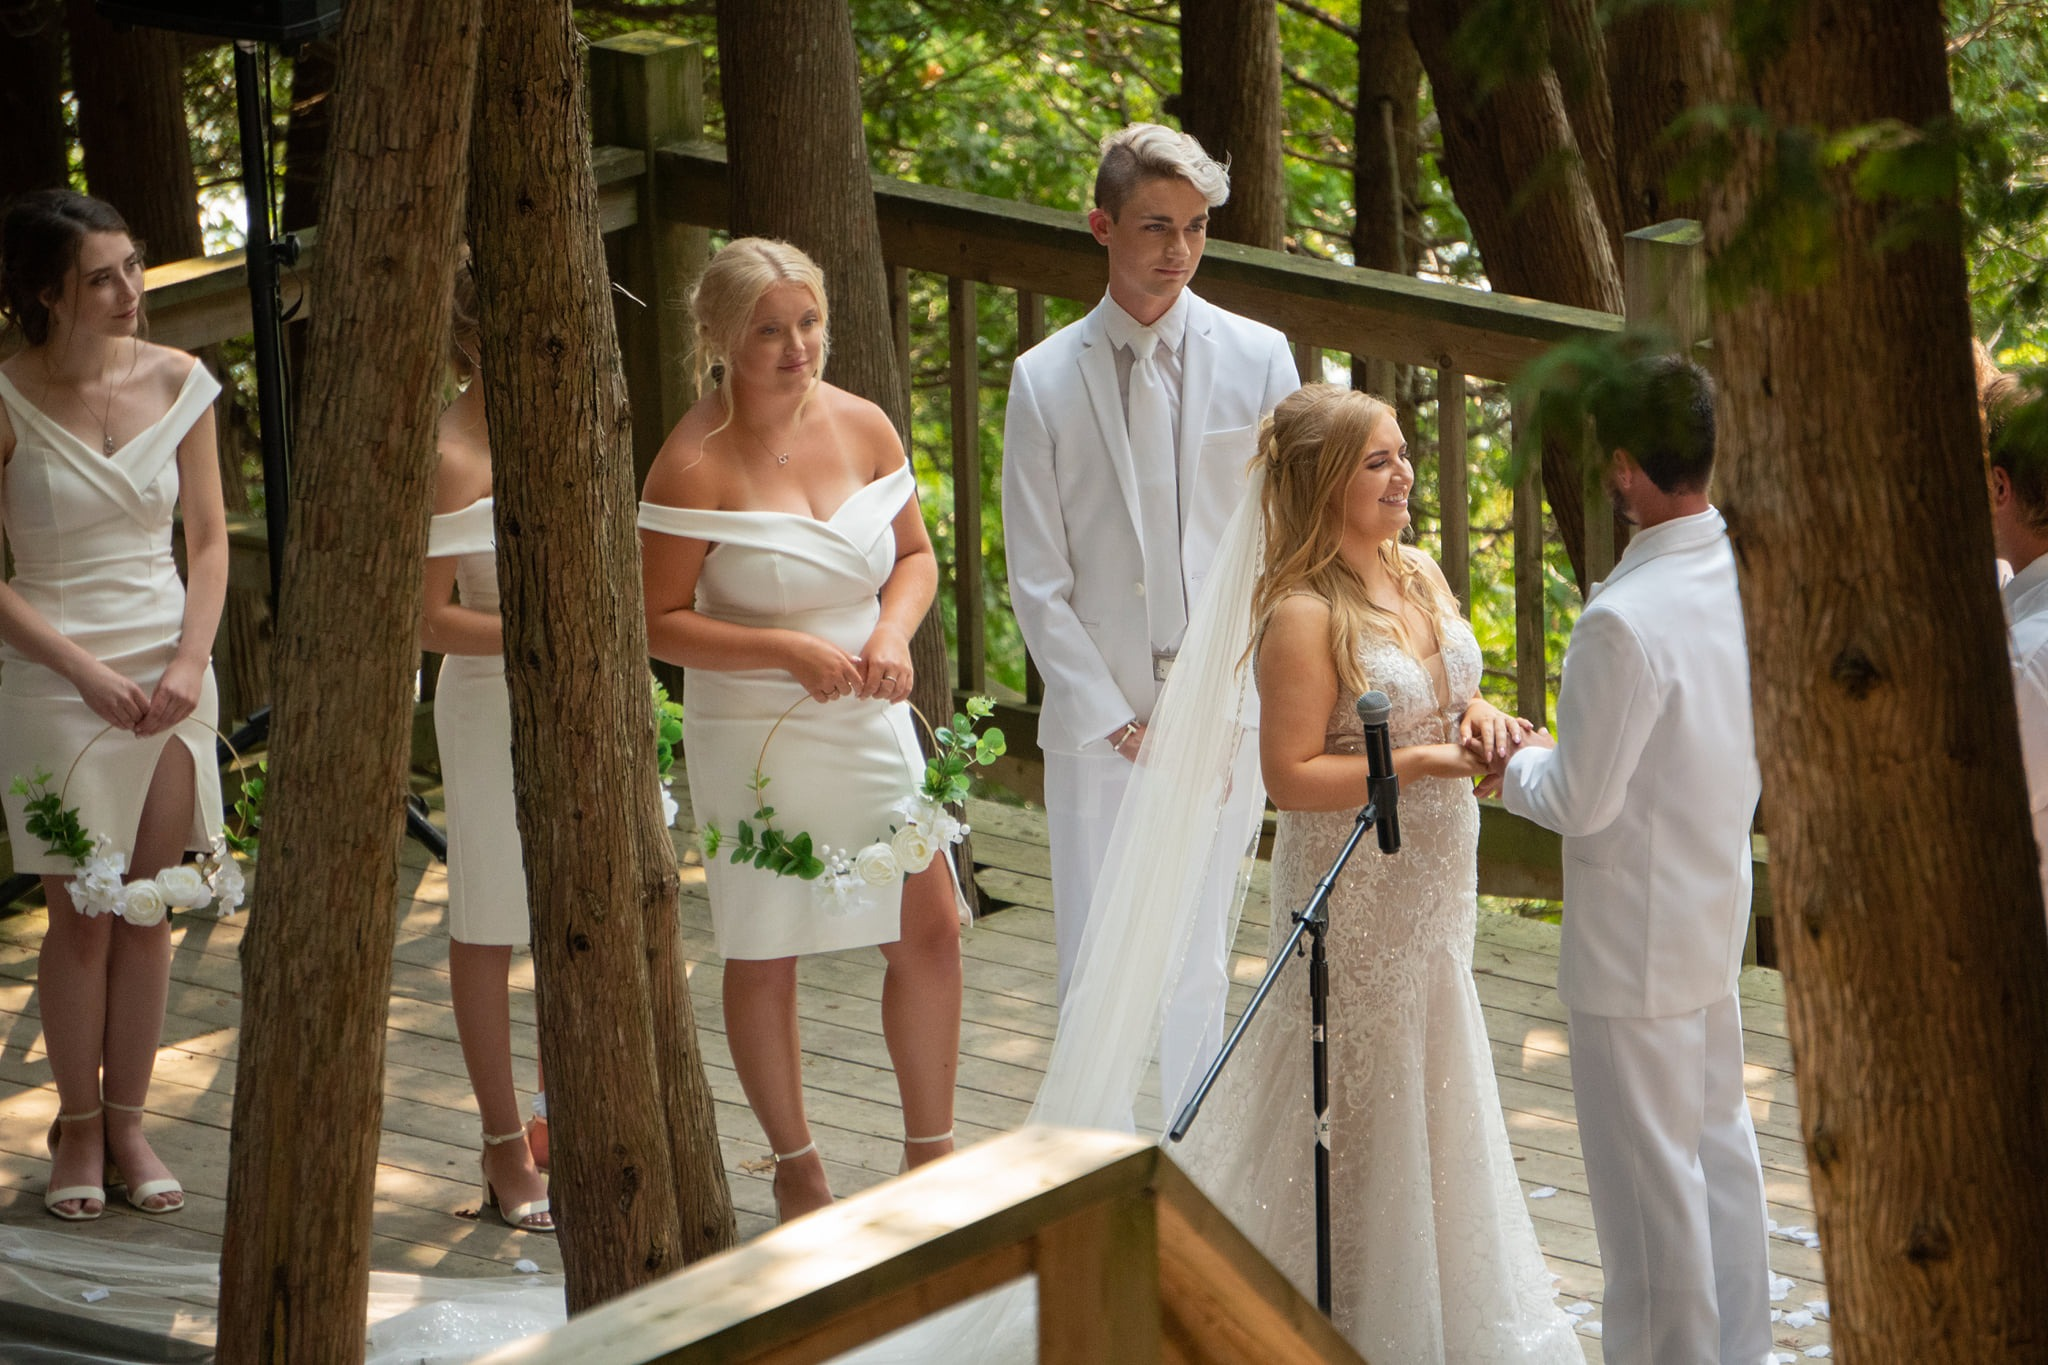 Wedding couple Jodi and Mackenzie stand hand in hand smiling on the outdoor Chapel stage with their wedding party dressed in white surrounding them.